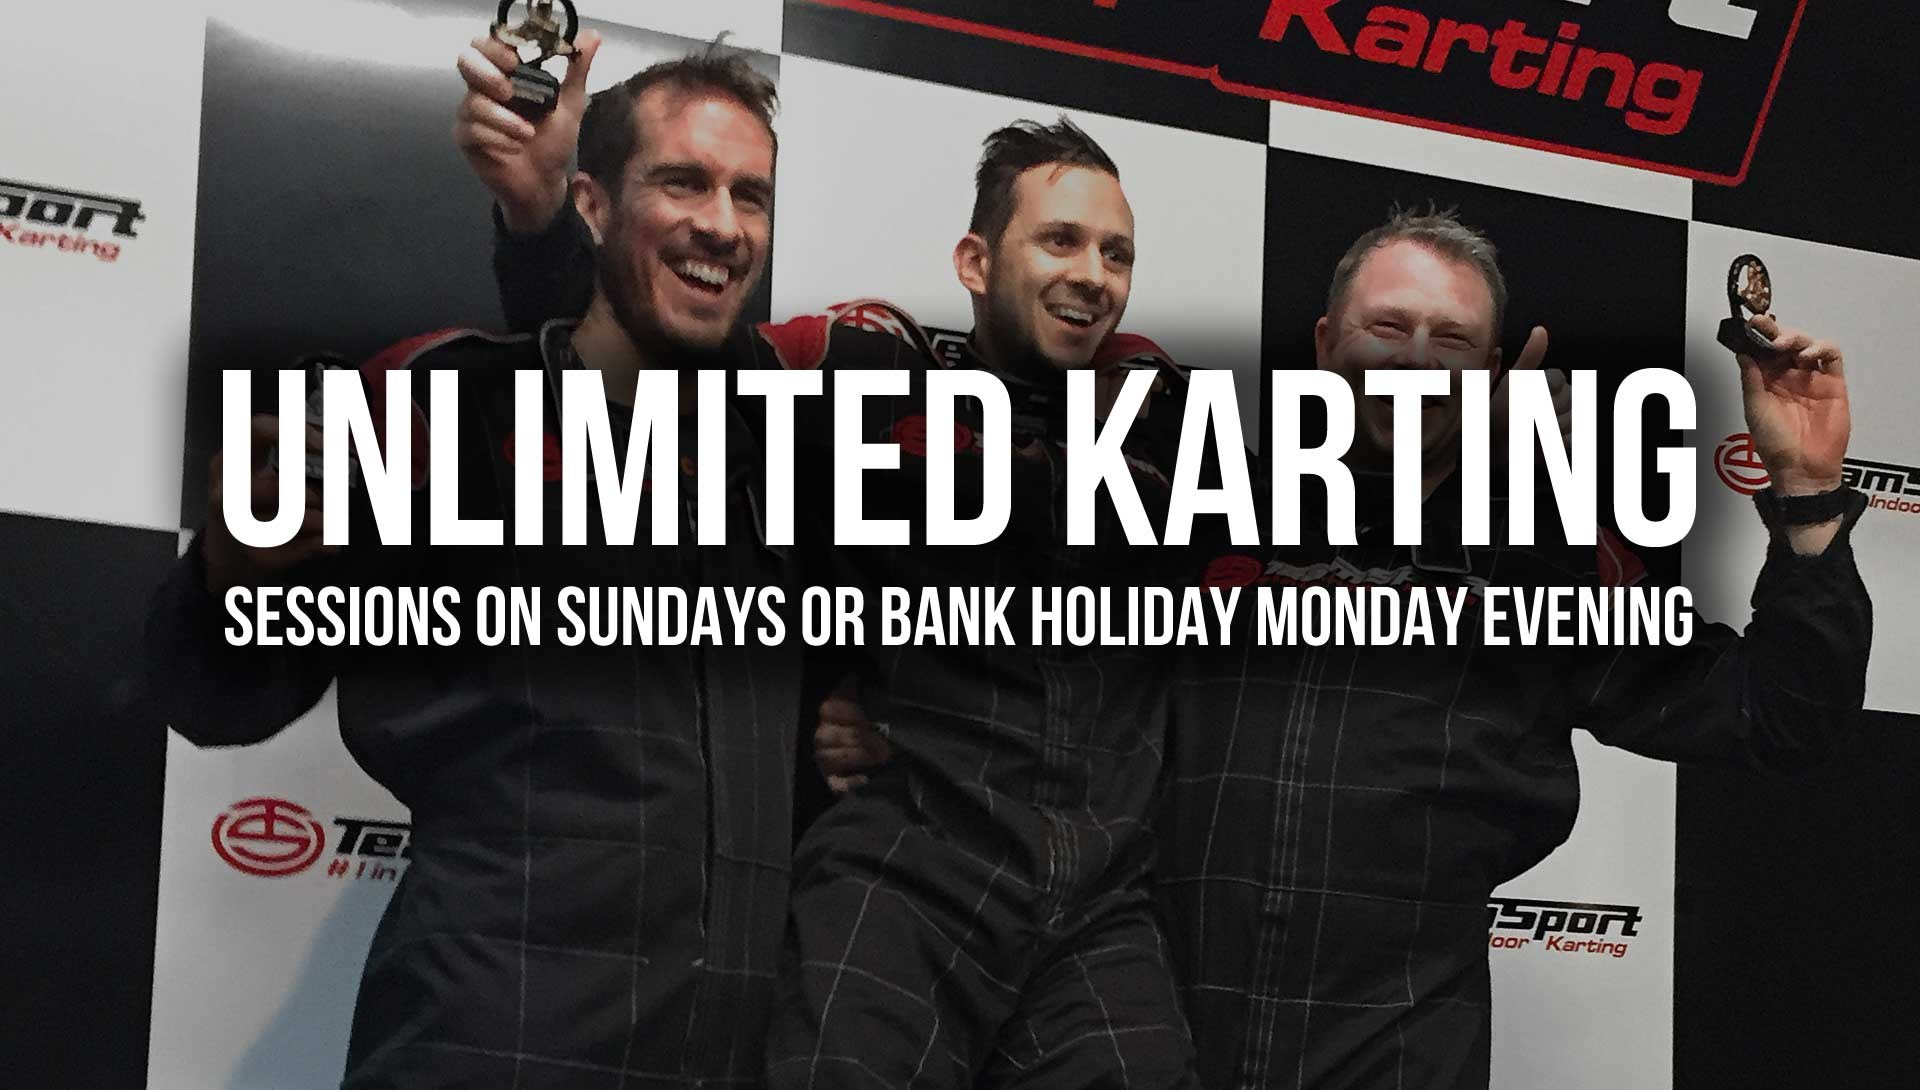 GO KARTING OFFERS - Unlimited Karting